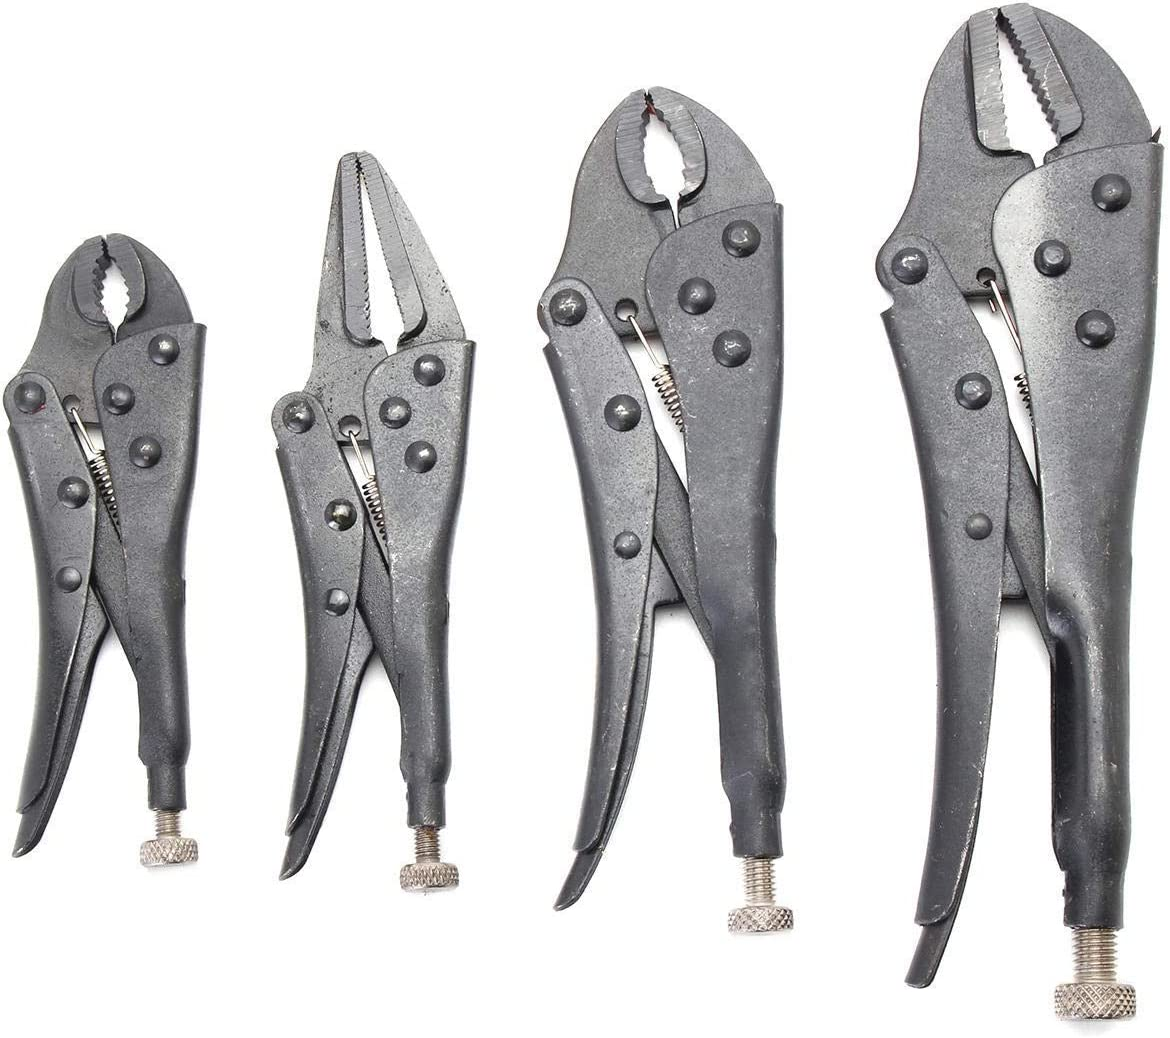 JF-XUAN Household Multifunctional DIY Tools 4Pcs Tampa Mall Forceps Lo Factory outlet Set